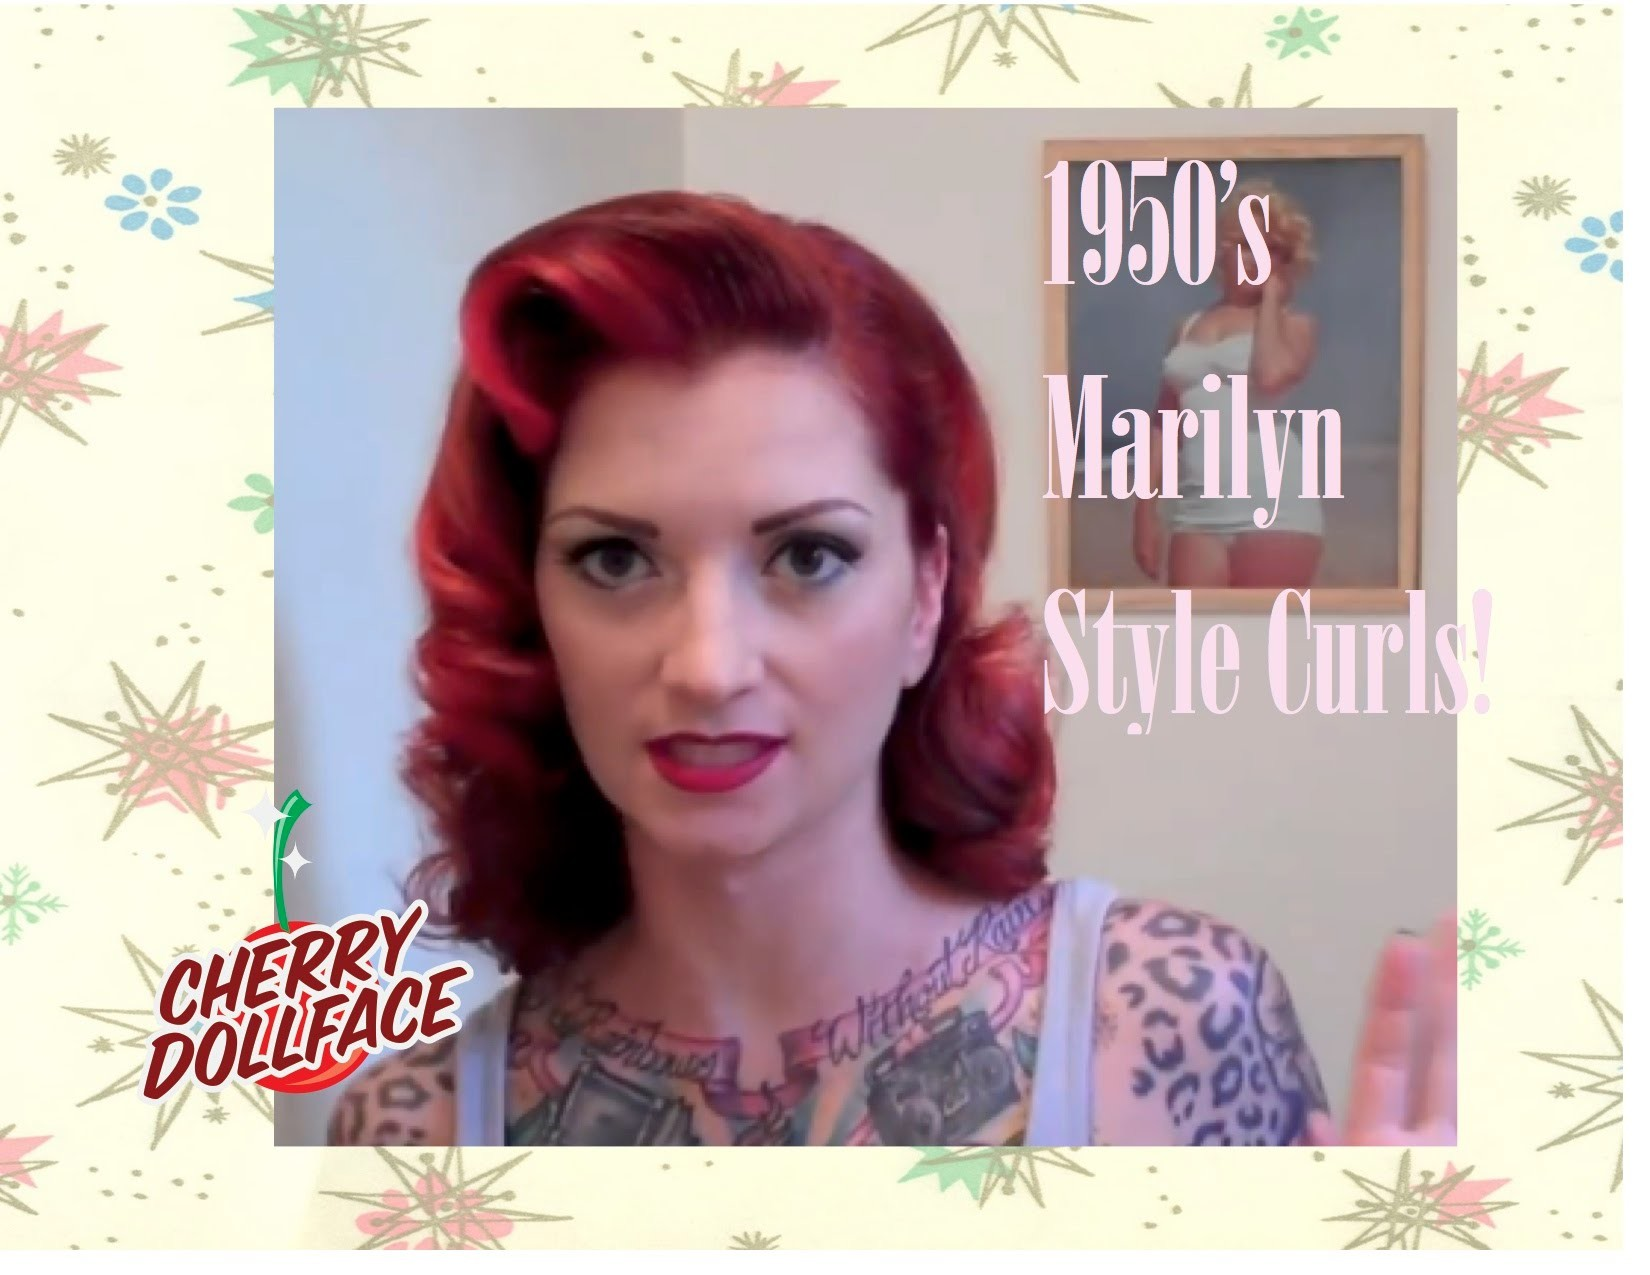 Vintage 1950's curly hair tutorial ala Marilyn Monroe by CHERRY DOLLFACE